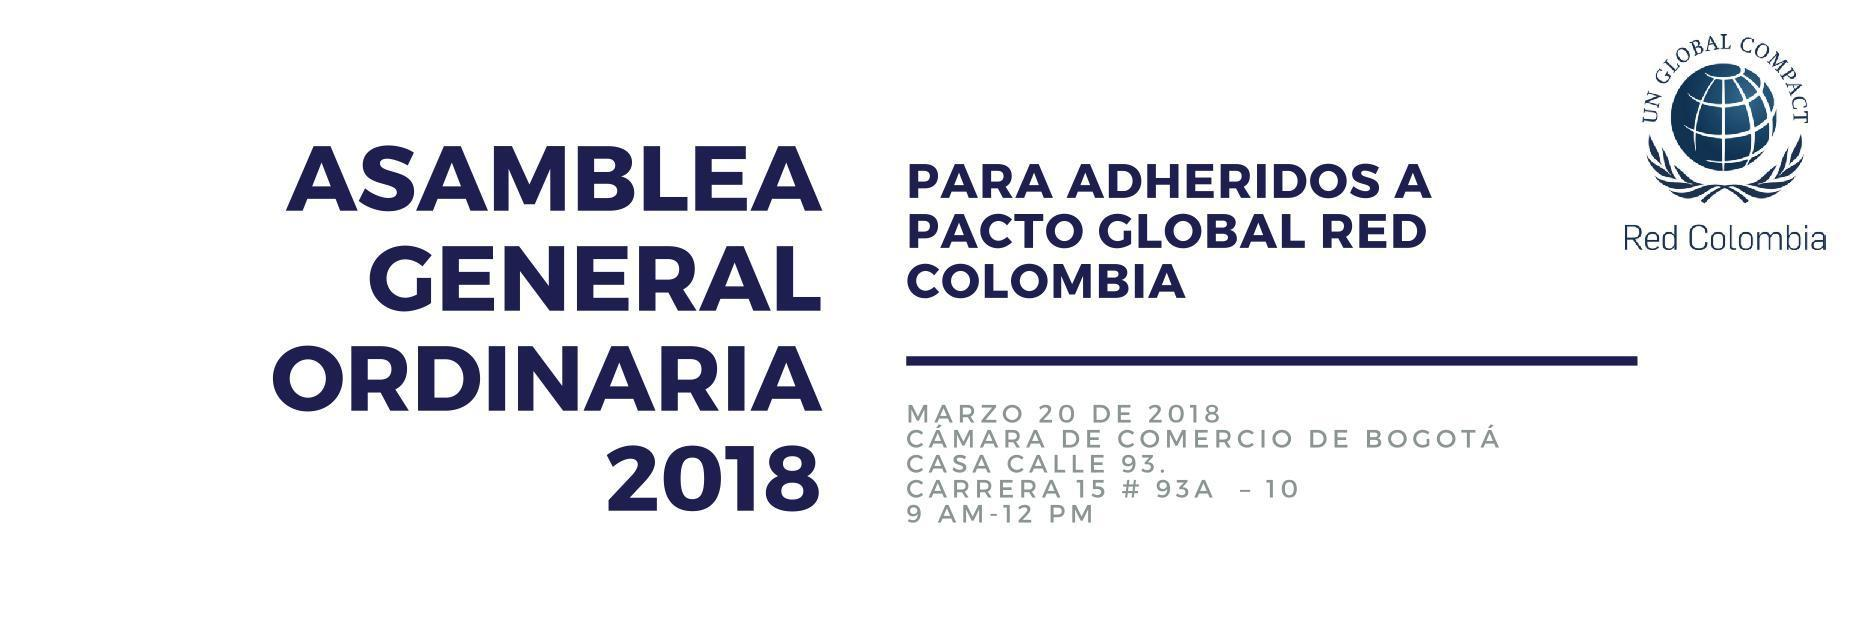 Citación Asambles General 2018 Pacto Global Red Colombia